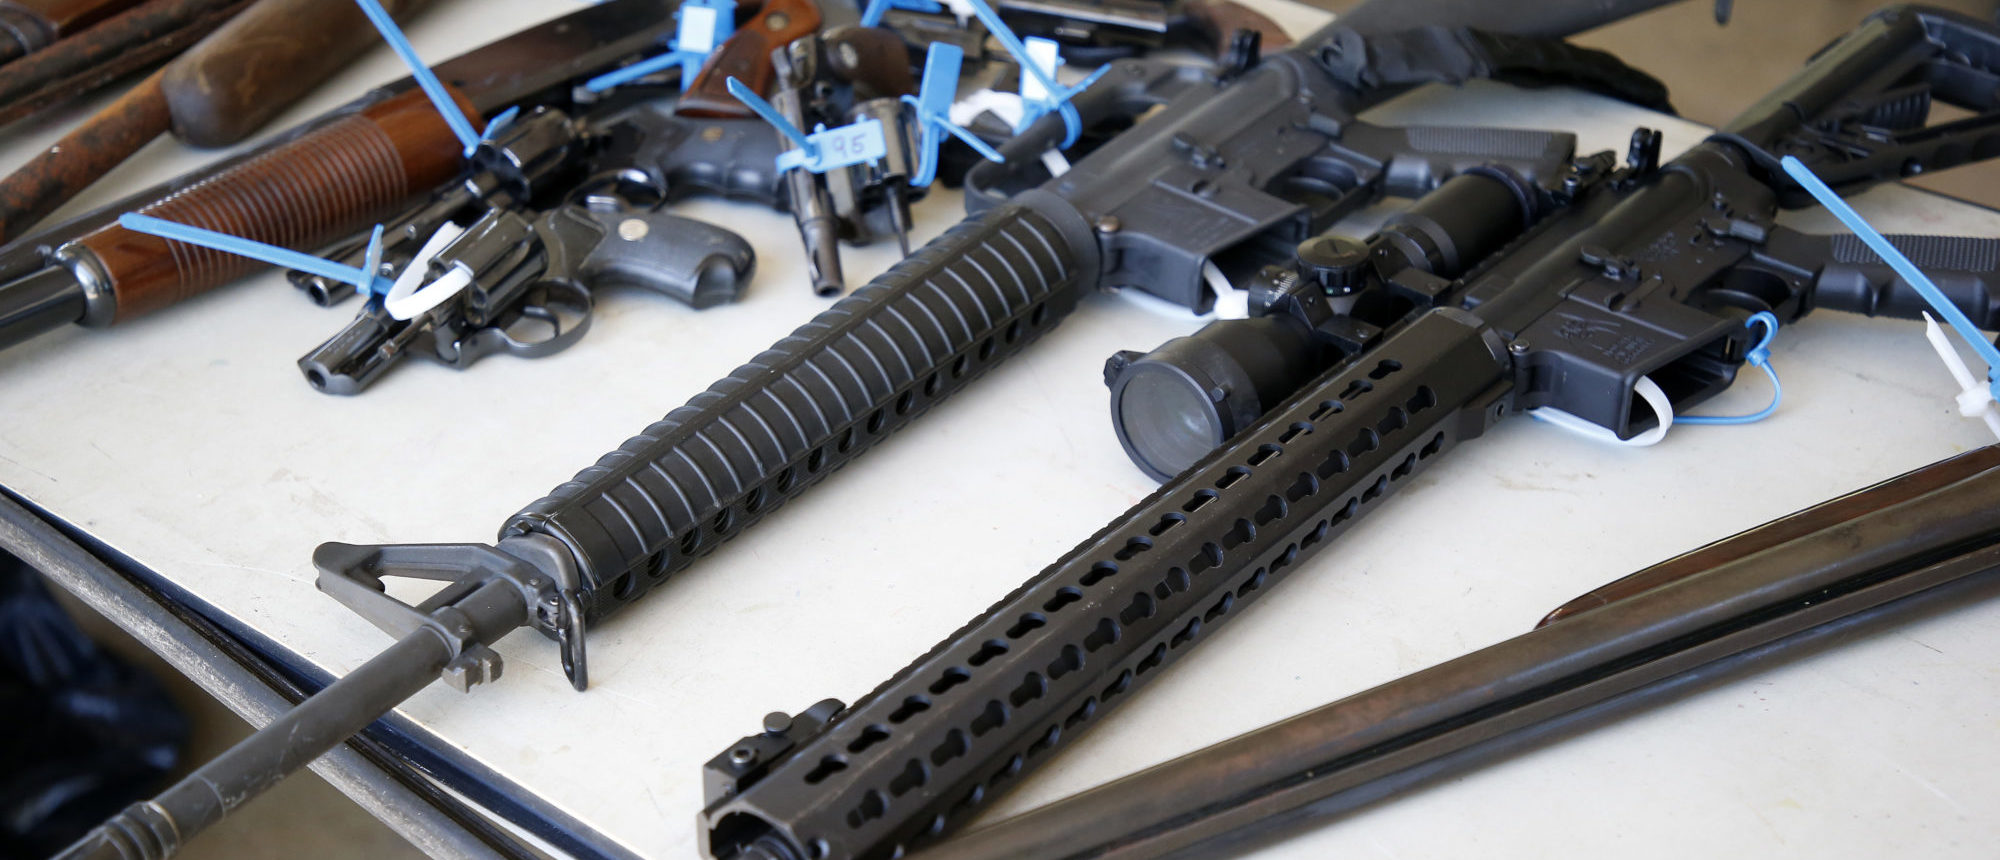 Two AR-15 rifles, along with other assorted guns, sit on a table after being surrendered during a City of Miami gun buy-back event in Miami, Florida on March 17, 2018. (Photo: RHONA WISE/AFP/Getty Images)